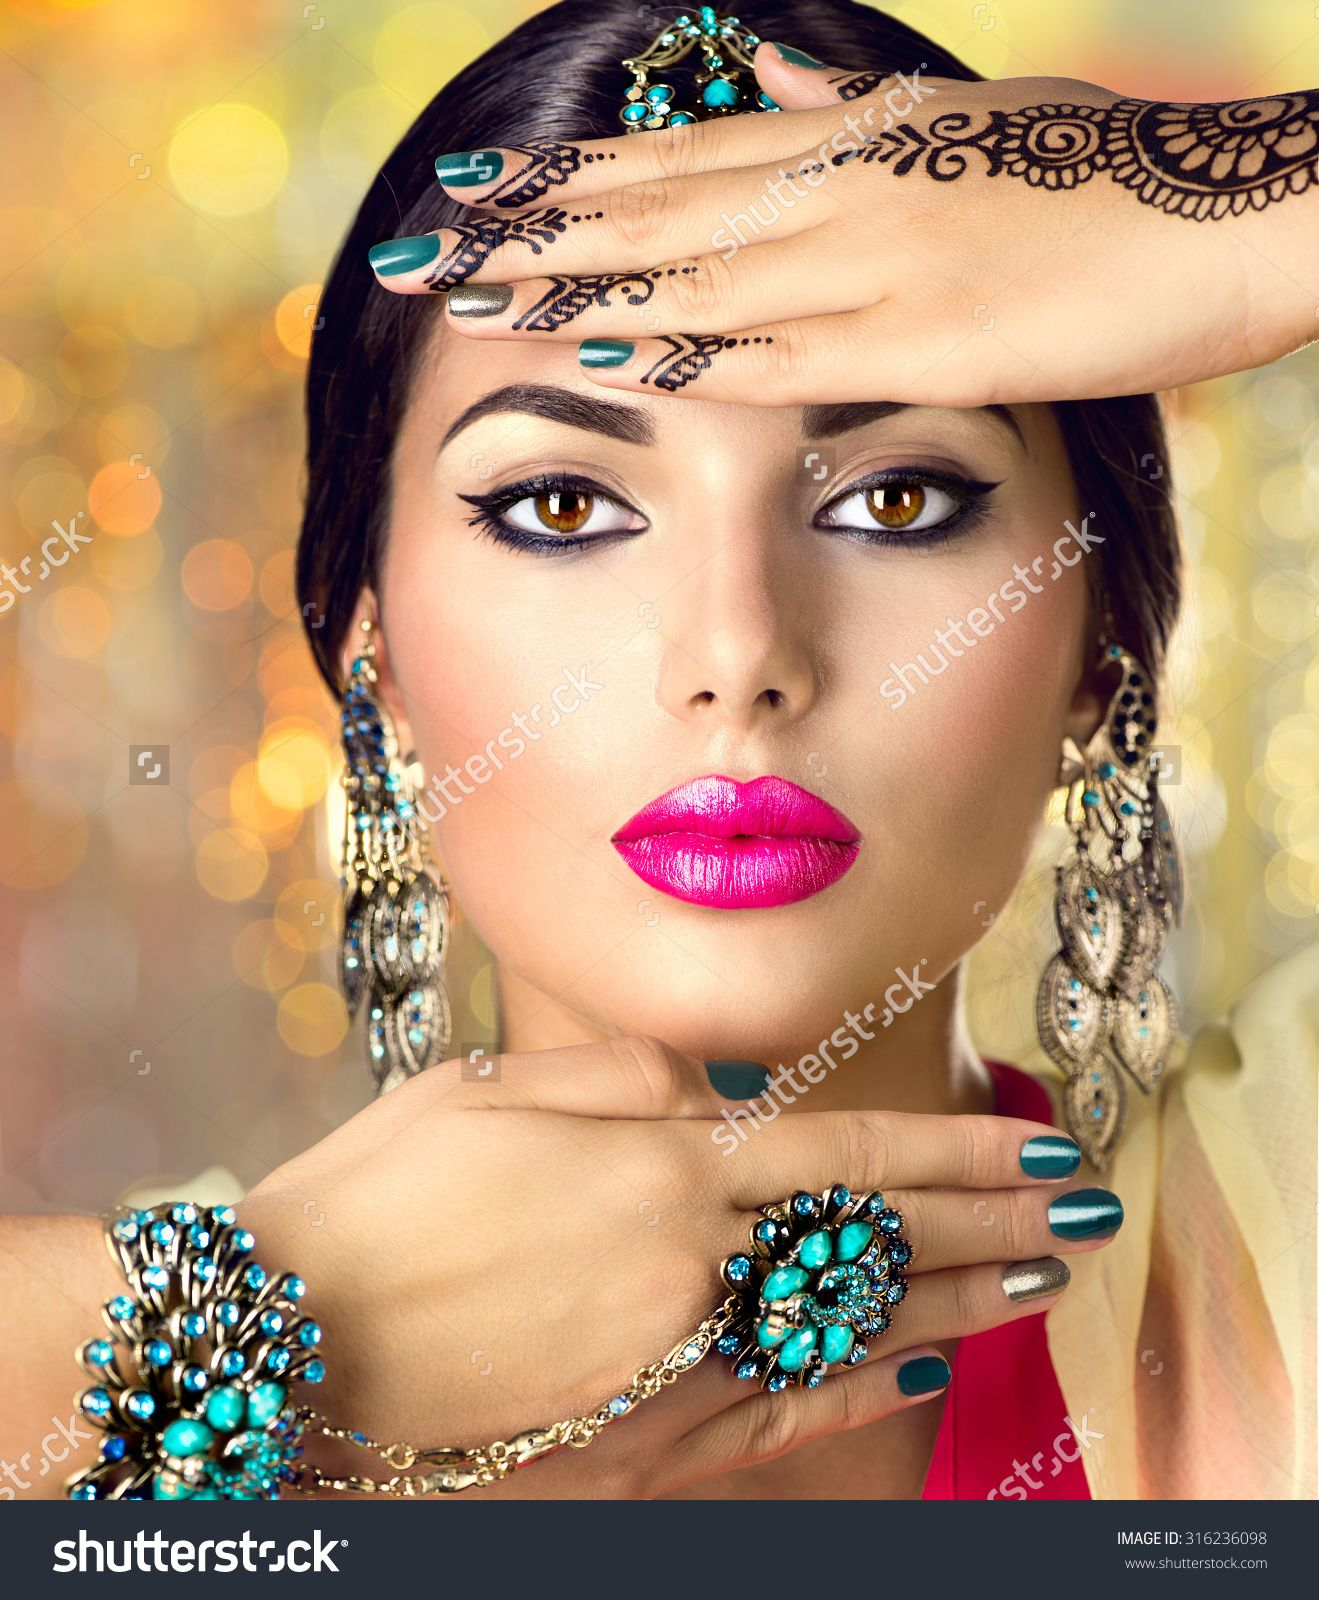 Beautiful fashion Indian woman portrait with oriental